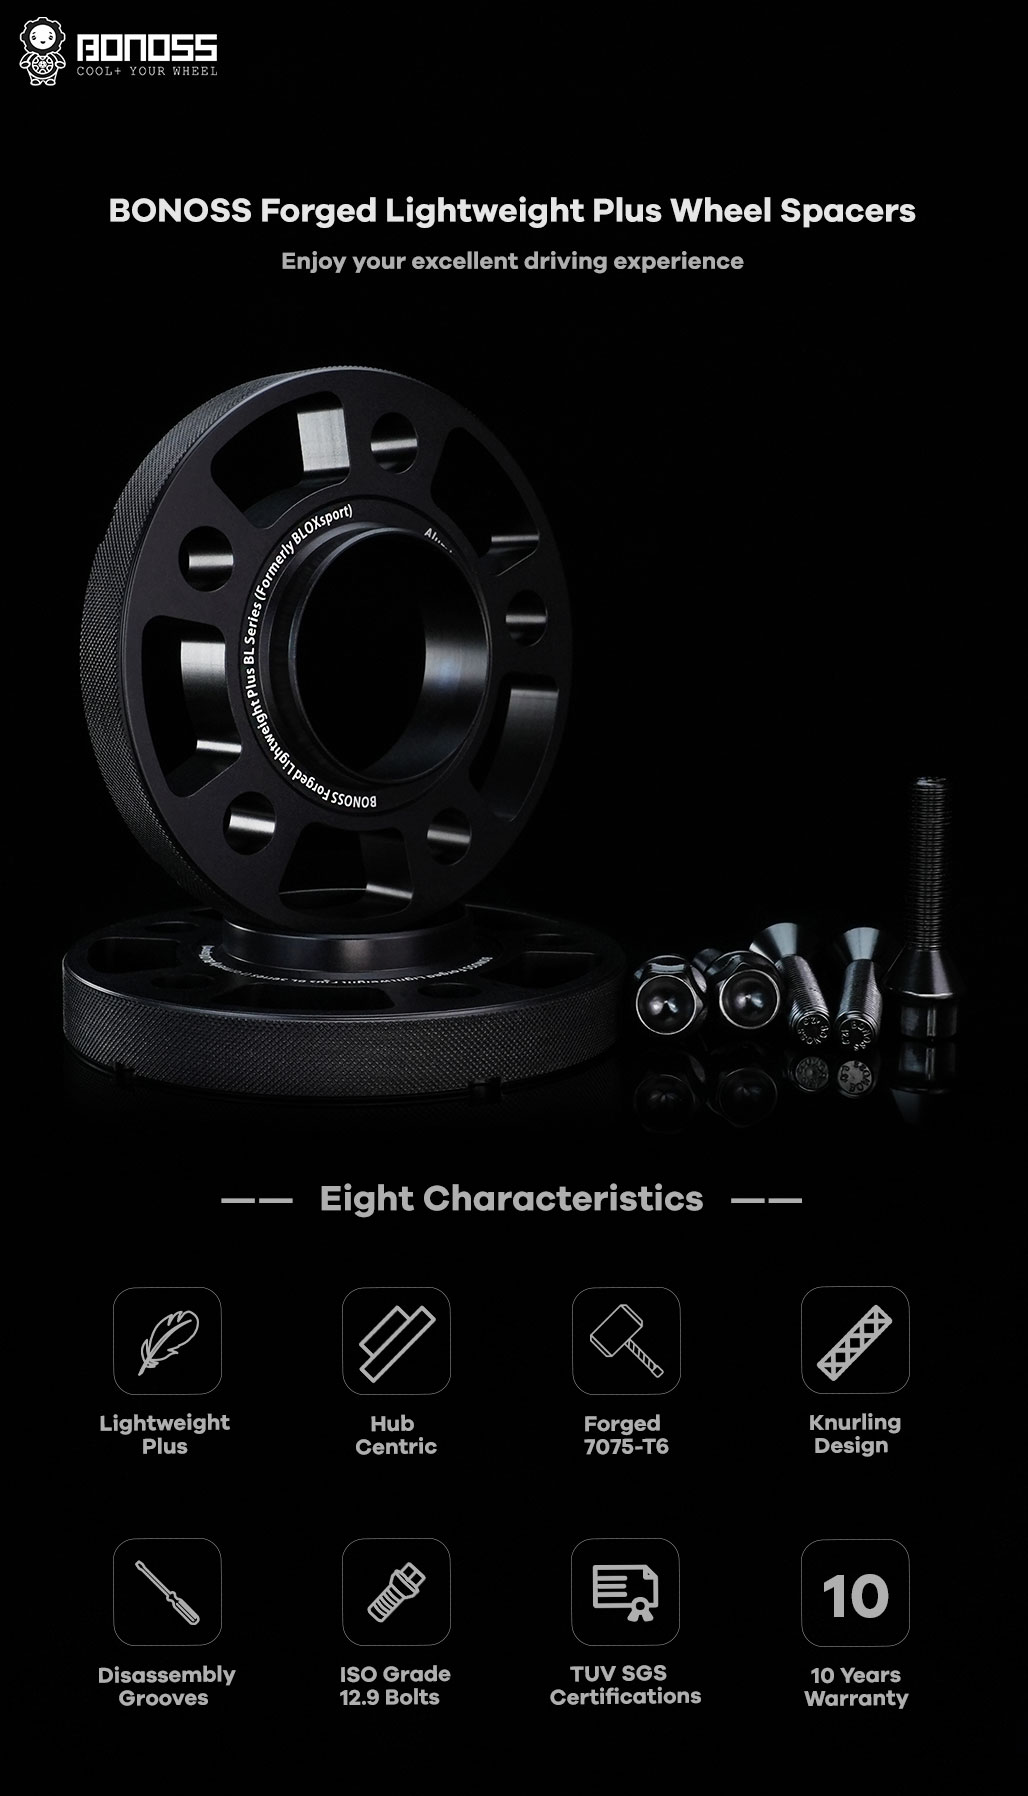 BONOSS Forged Lightweight Plus Hubcentric Wheel Spacers 5 Lug Wheel Adapters Car Wheel ET Spacers AL7075-T6 F